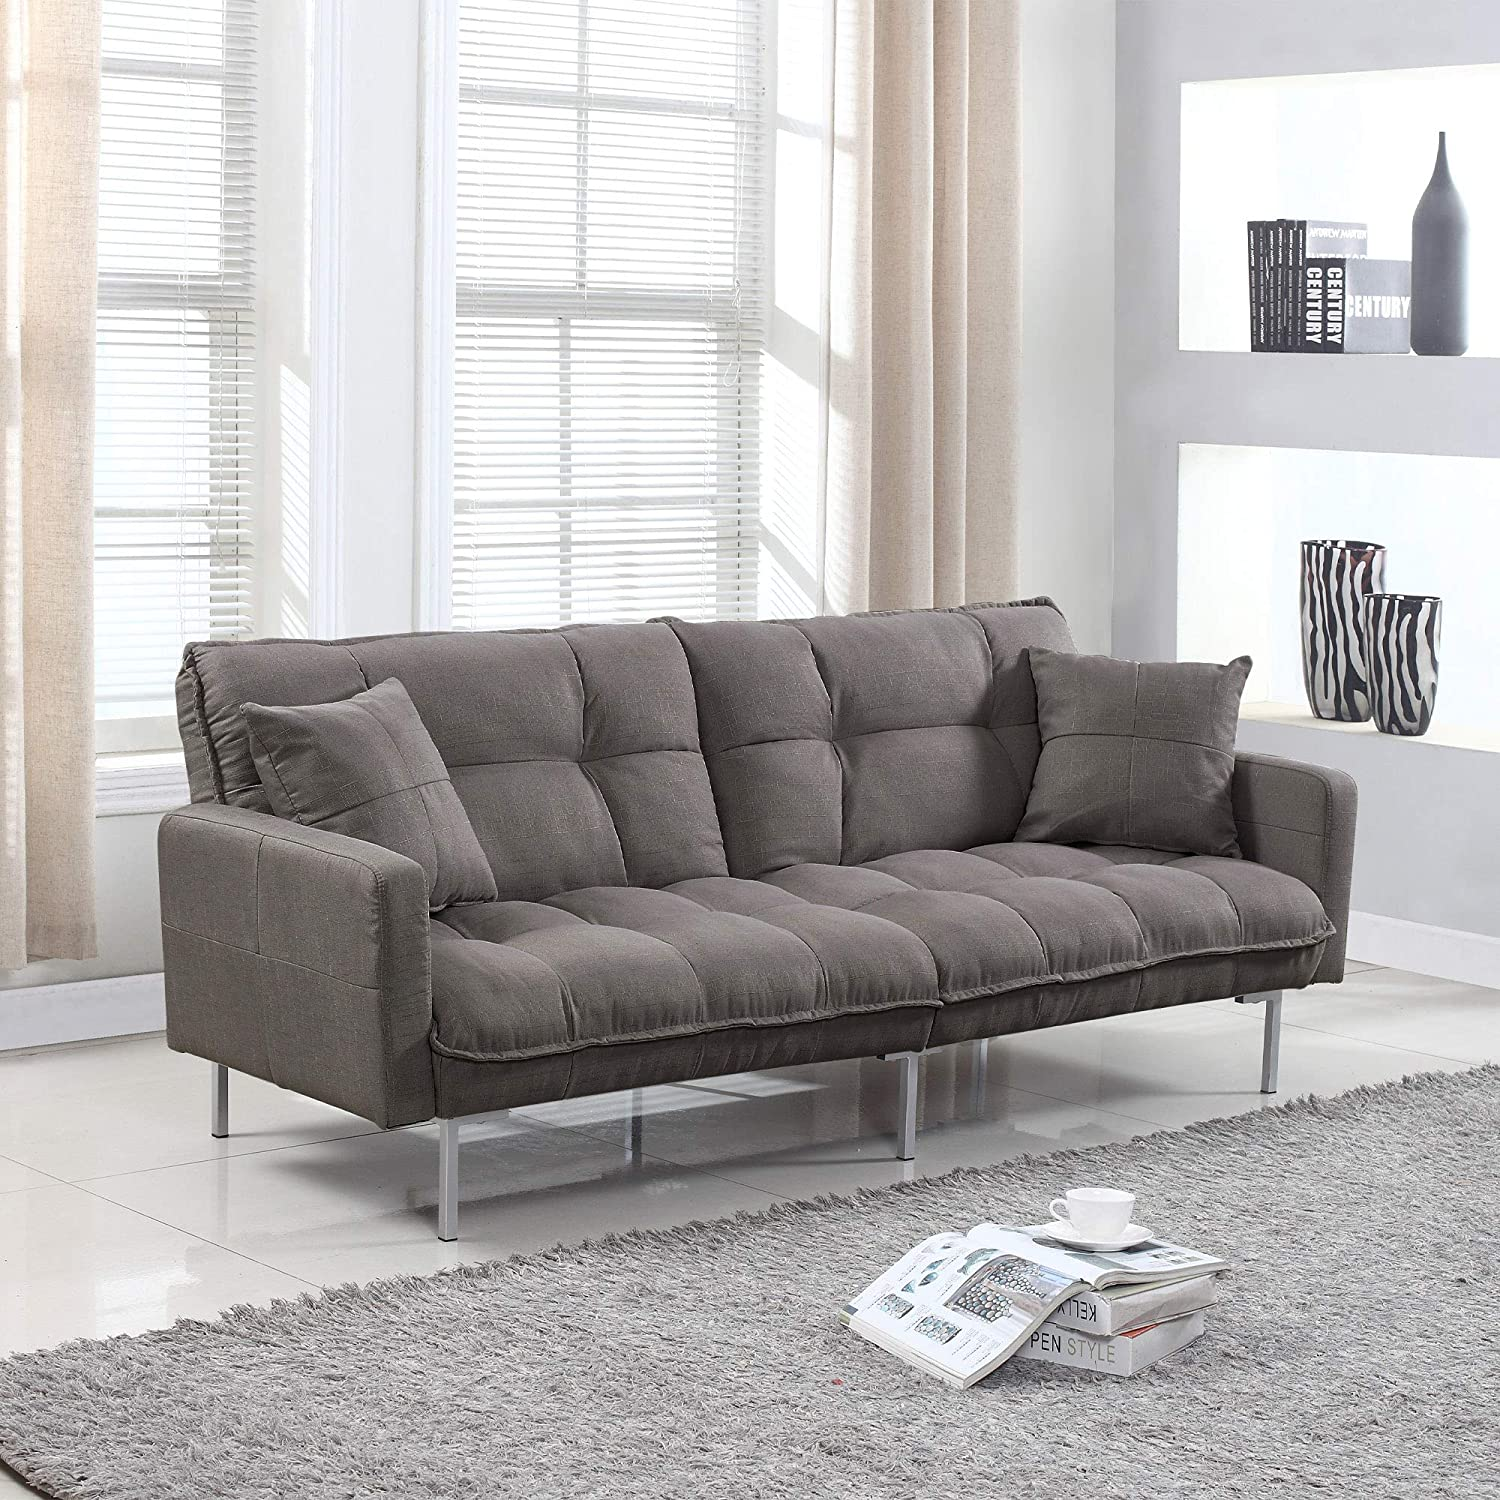 Top 8 Best Comfortable Sofa Beds for Daily Use [ Expert's Choice - 2021] 5